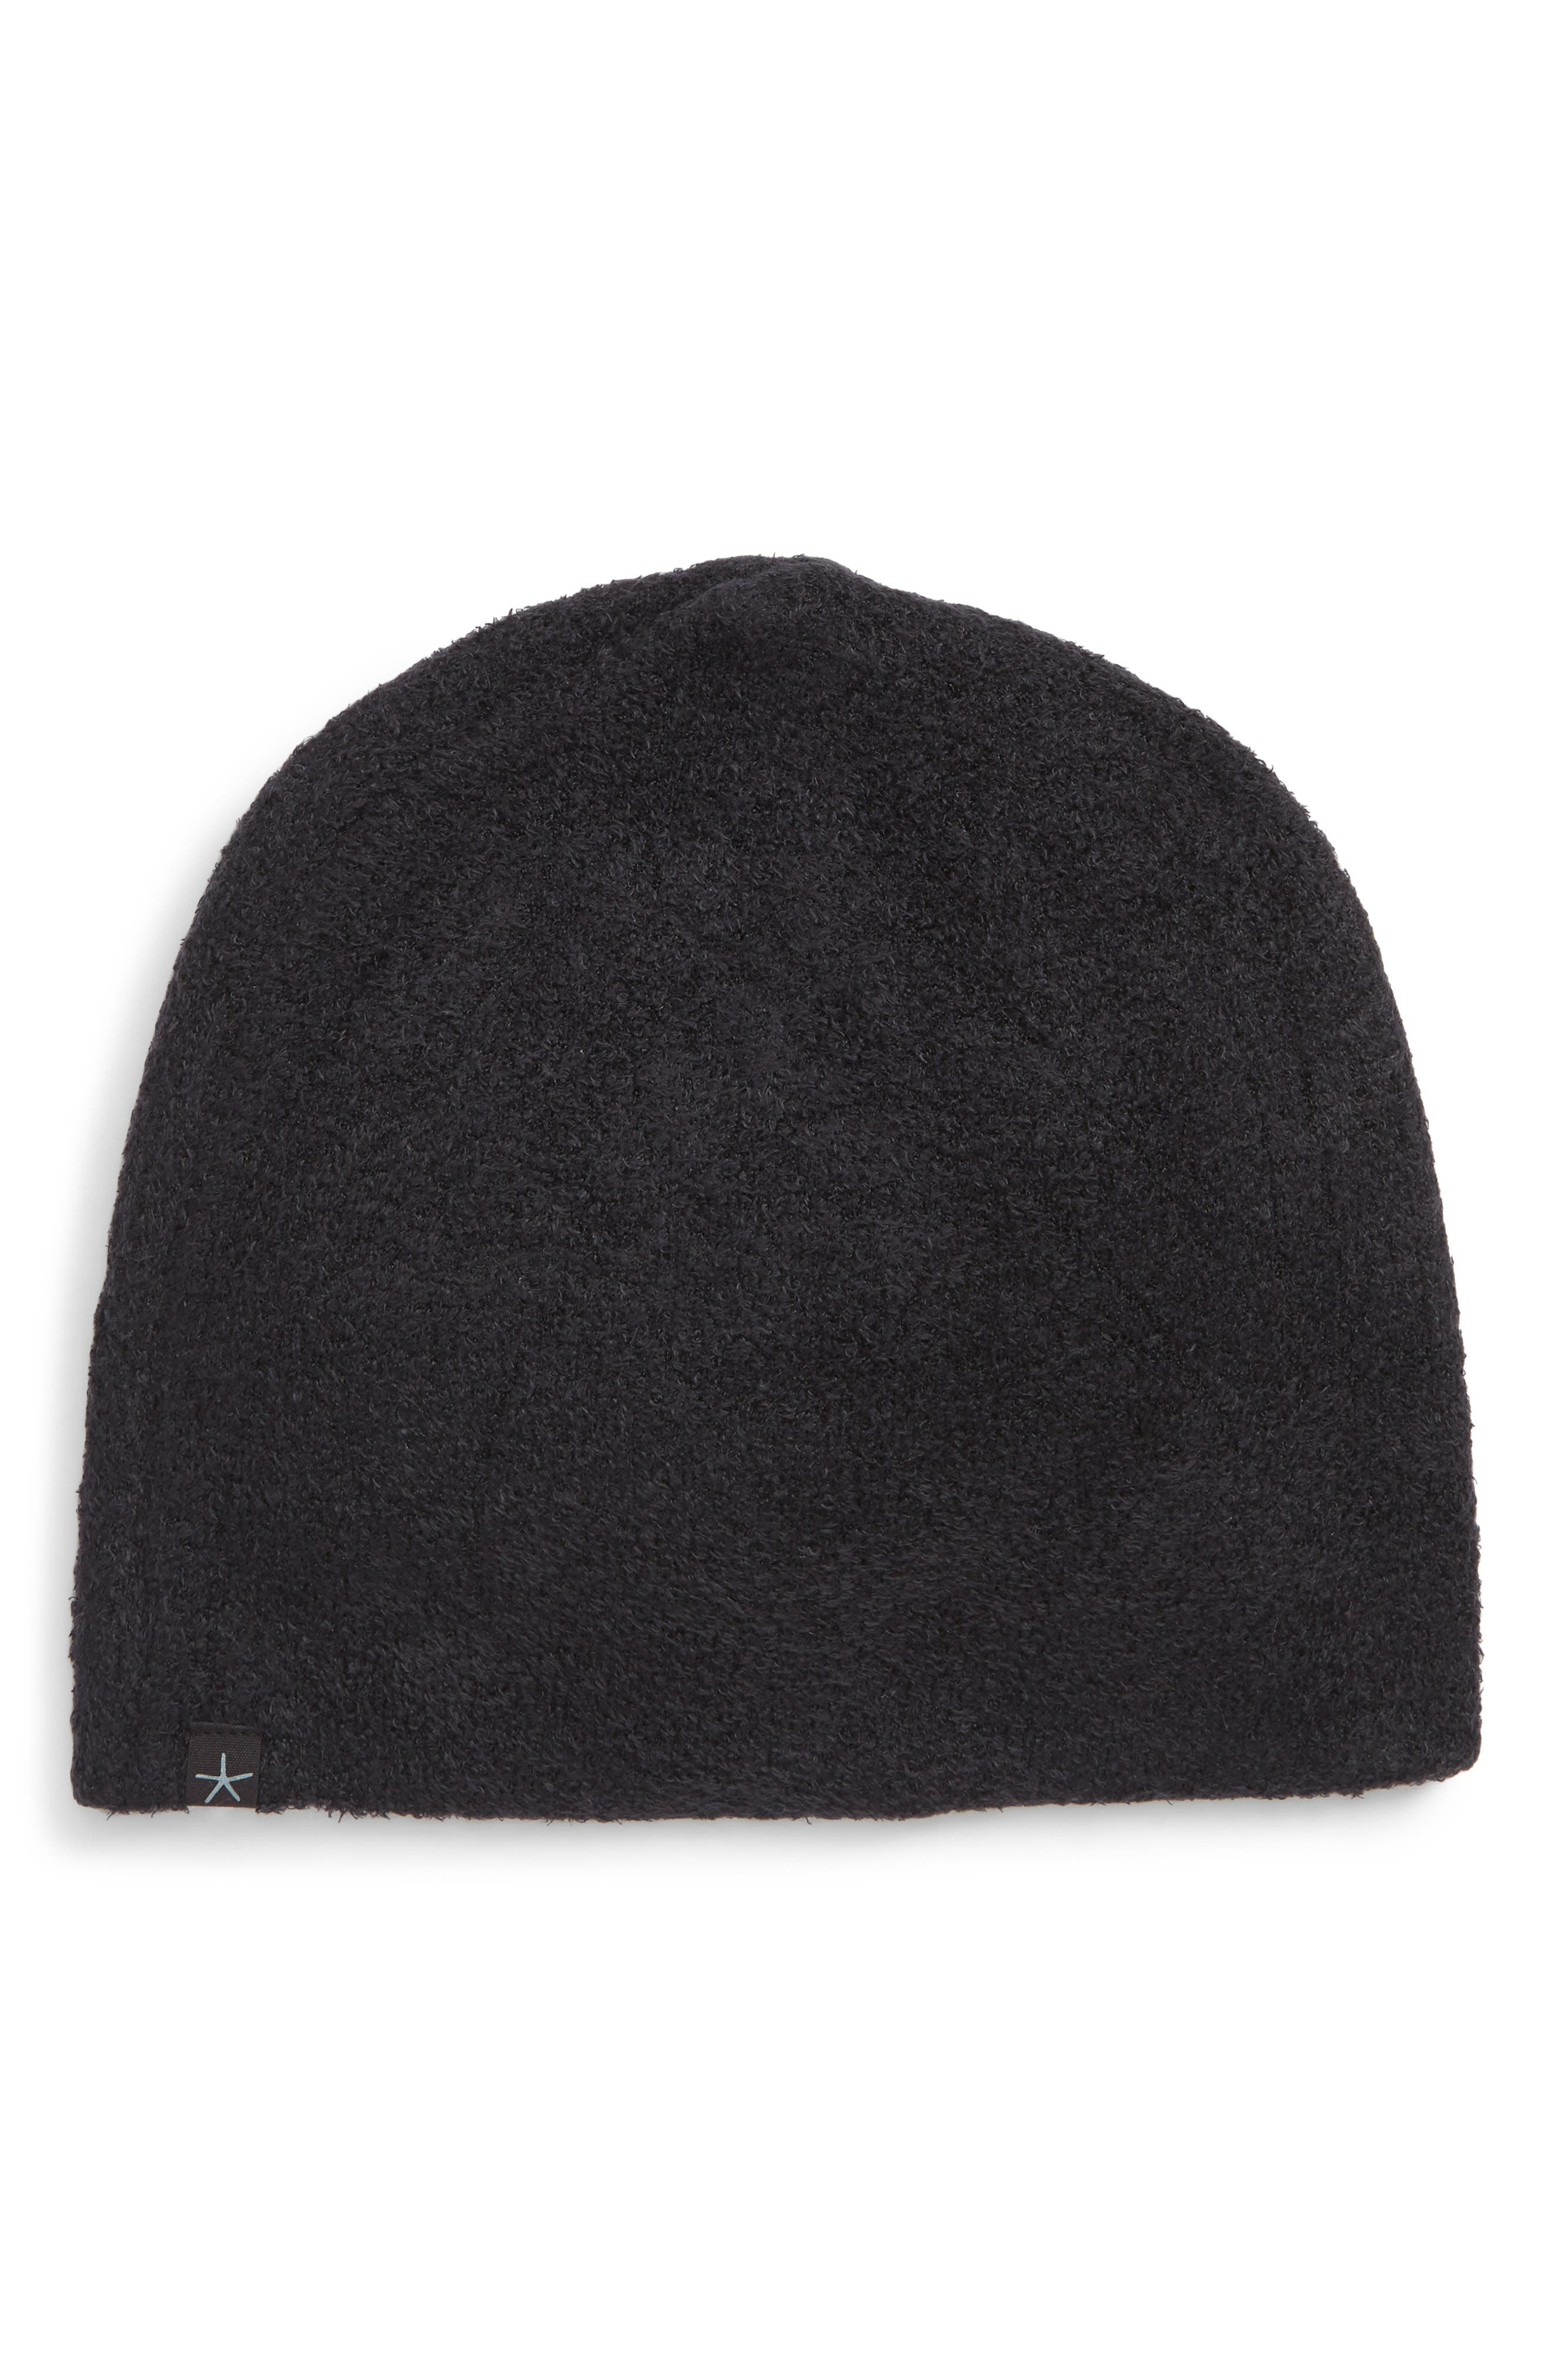 BAREFOOT DREAMS<SUP>®</SUP> CozyChic<sup>™</sup> Beanie, Main, color, 001